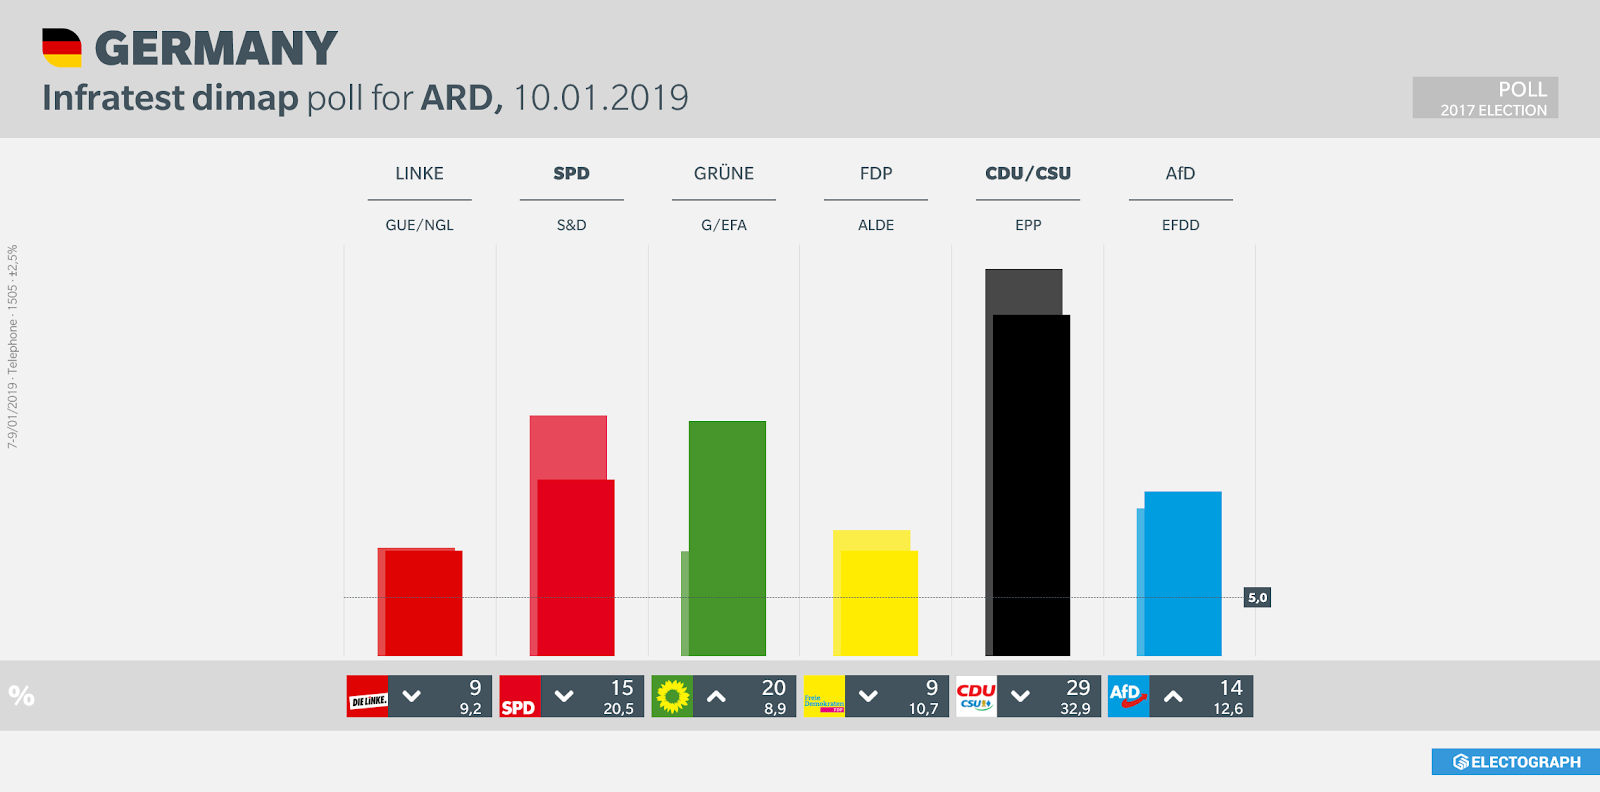 GERMANY: Infratest dimap poll chart for ARD, 10 January 2019